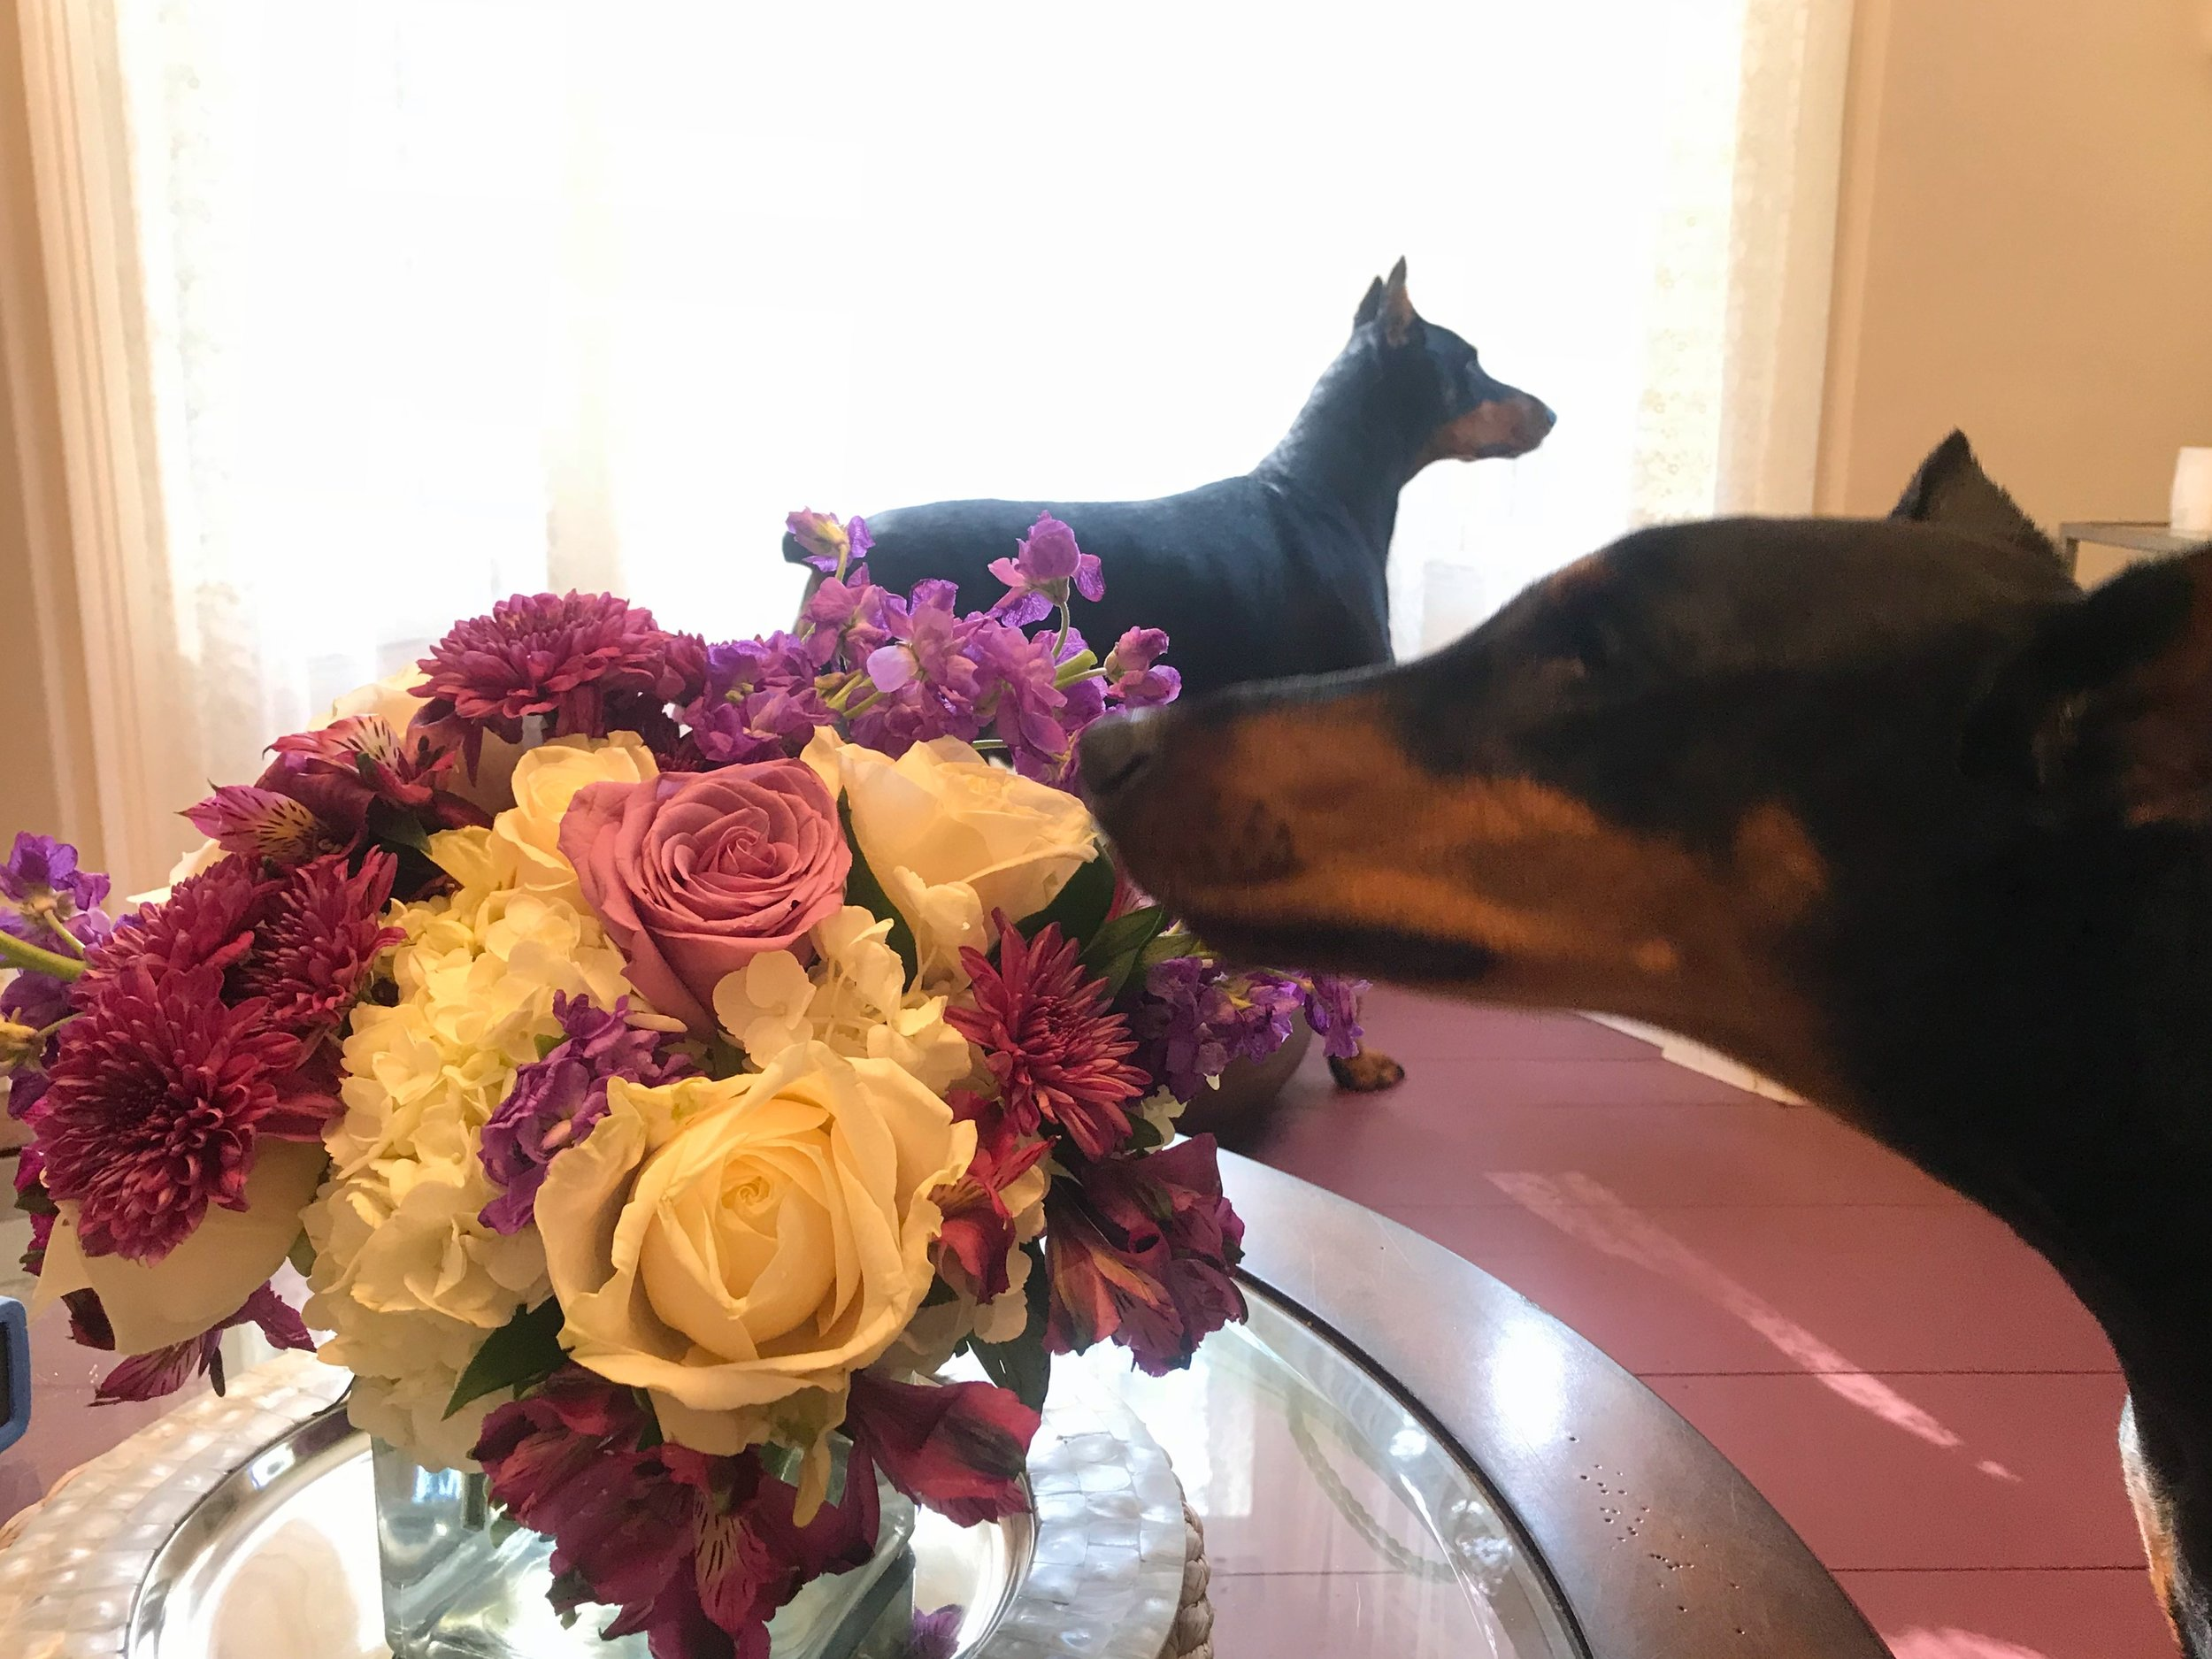 One of my adult yoga students brought these flowers for our altar. After our class ended I brought the dogs in from the kennels and Zoë made a beeline for the bouquet! I think she could feel all the good juju in the room!